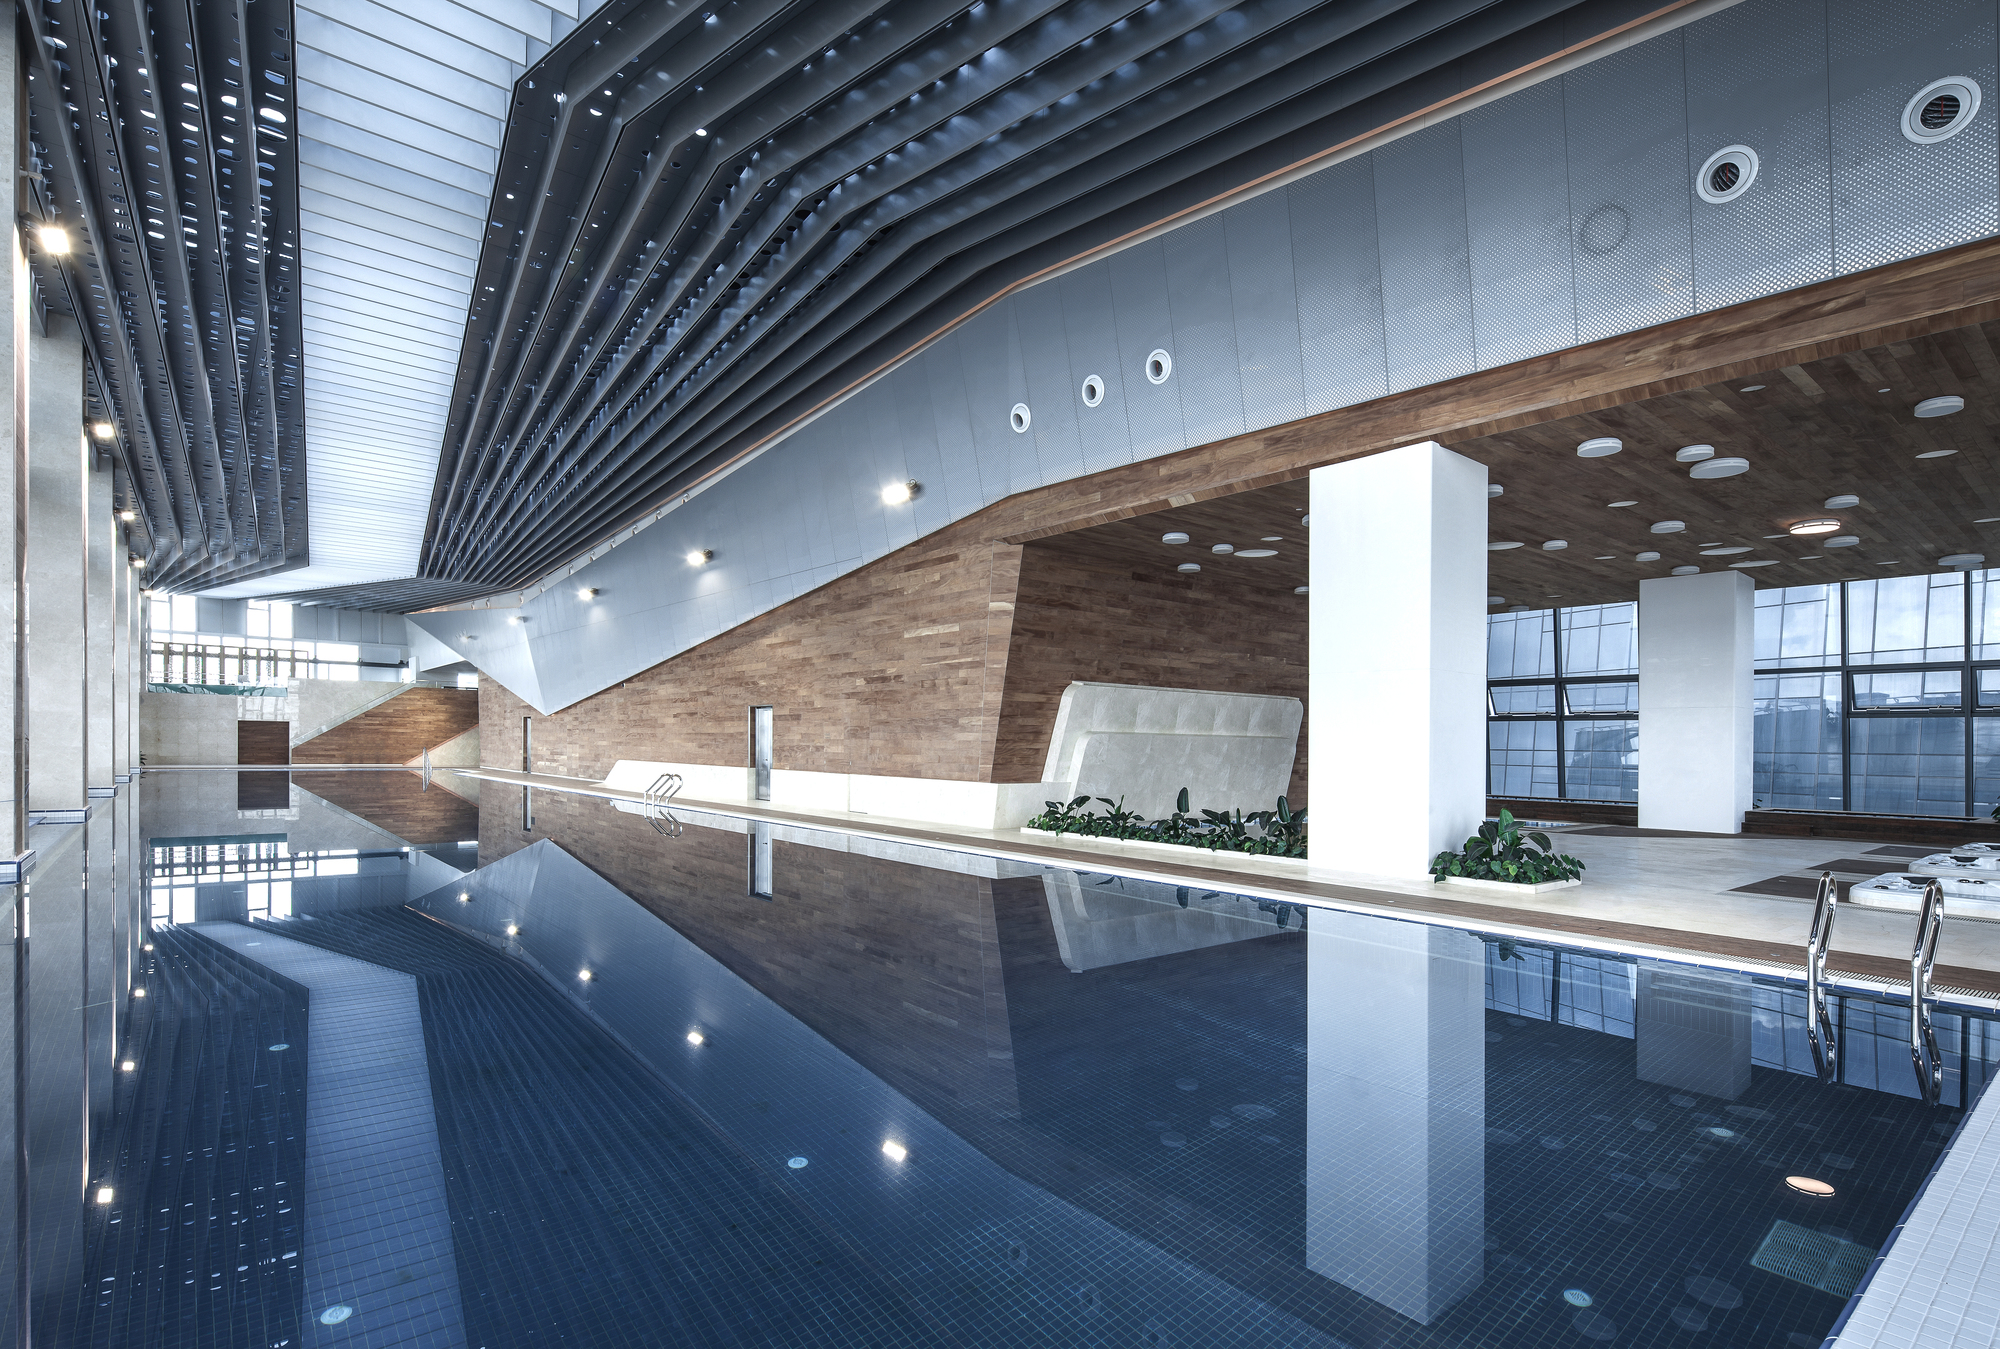 archdaily.com - Tencent Seafront Towers Interior Design / B+H Architects